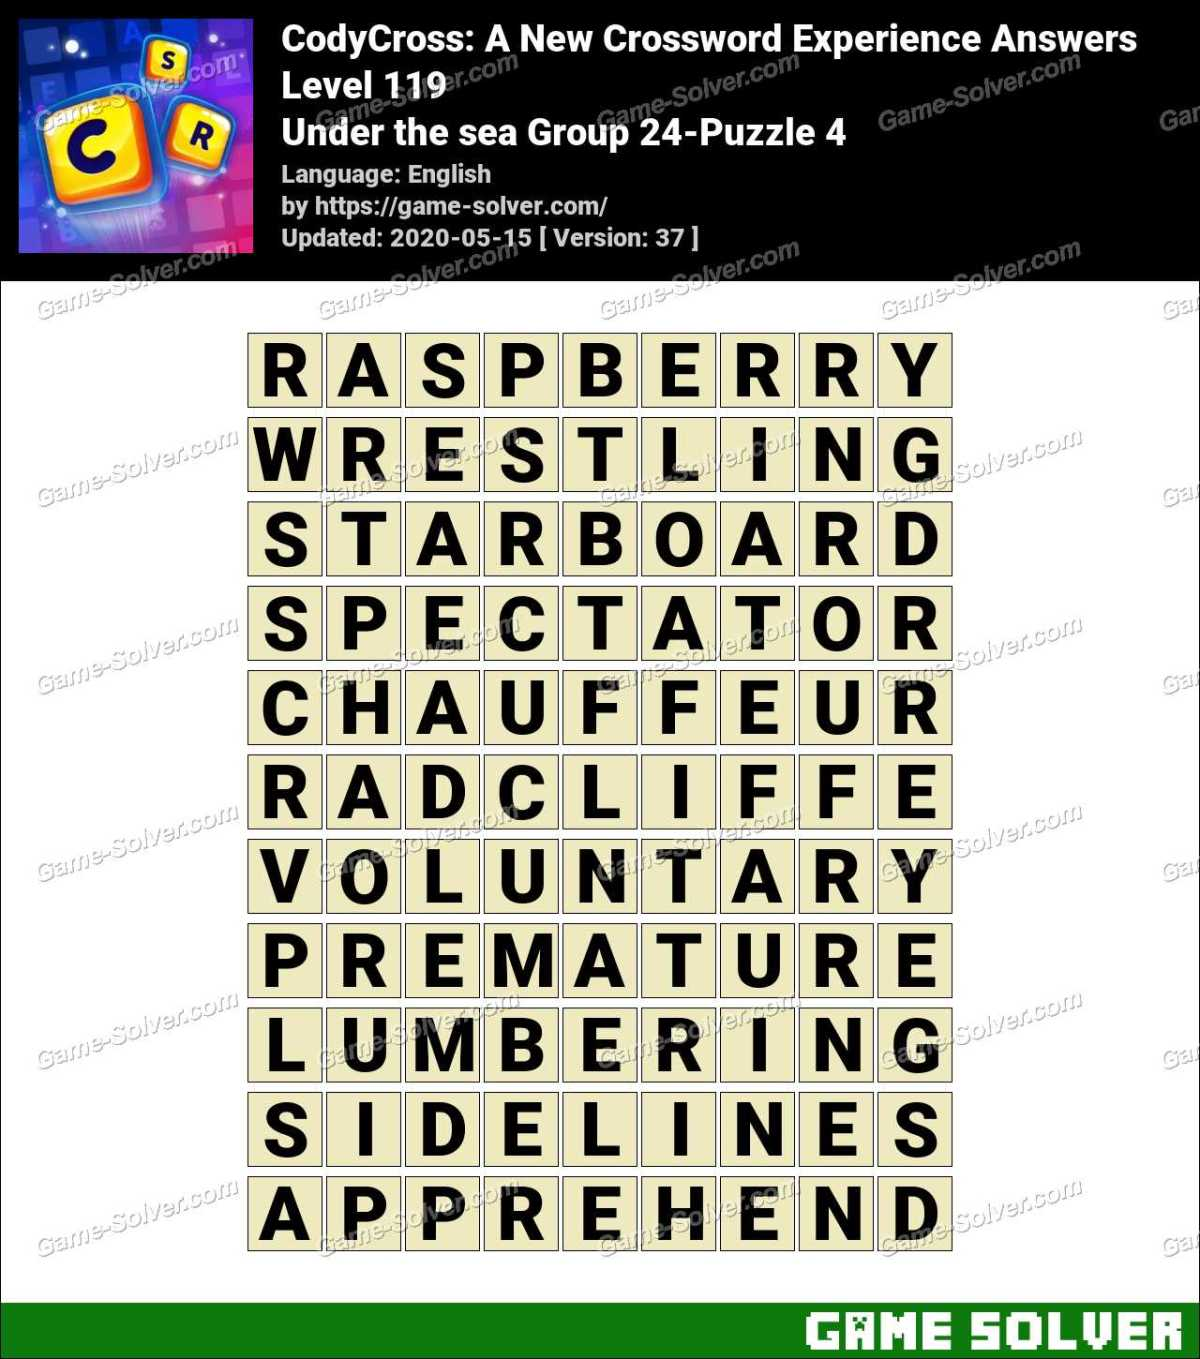 CodyCross Under the sea Group 24-Puzzle 4 Answers